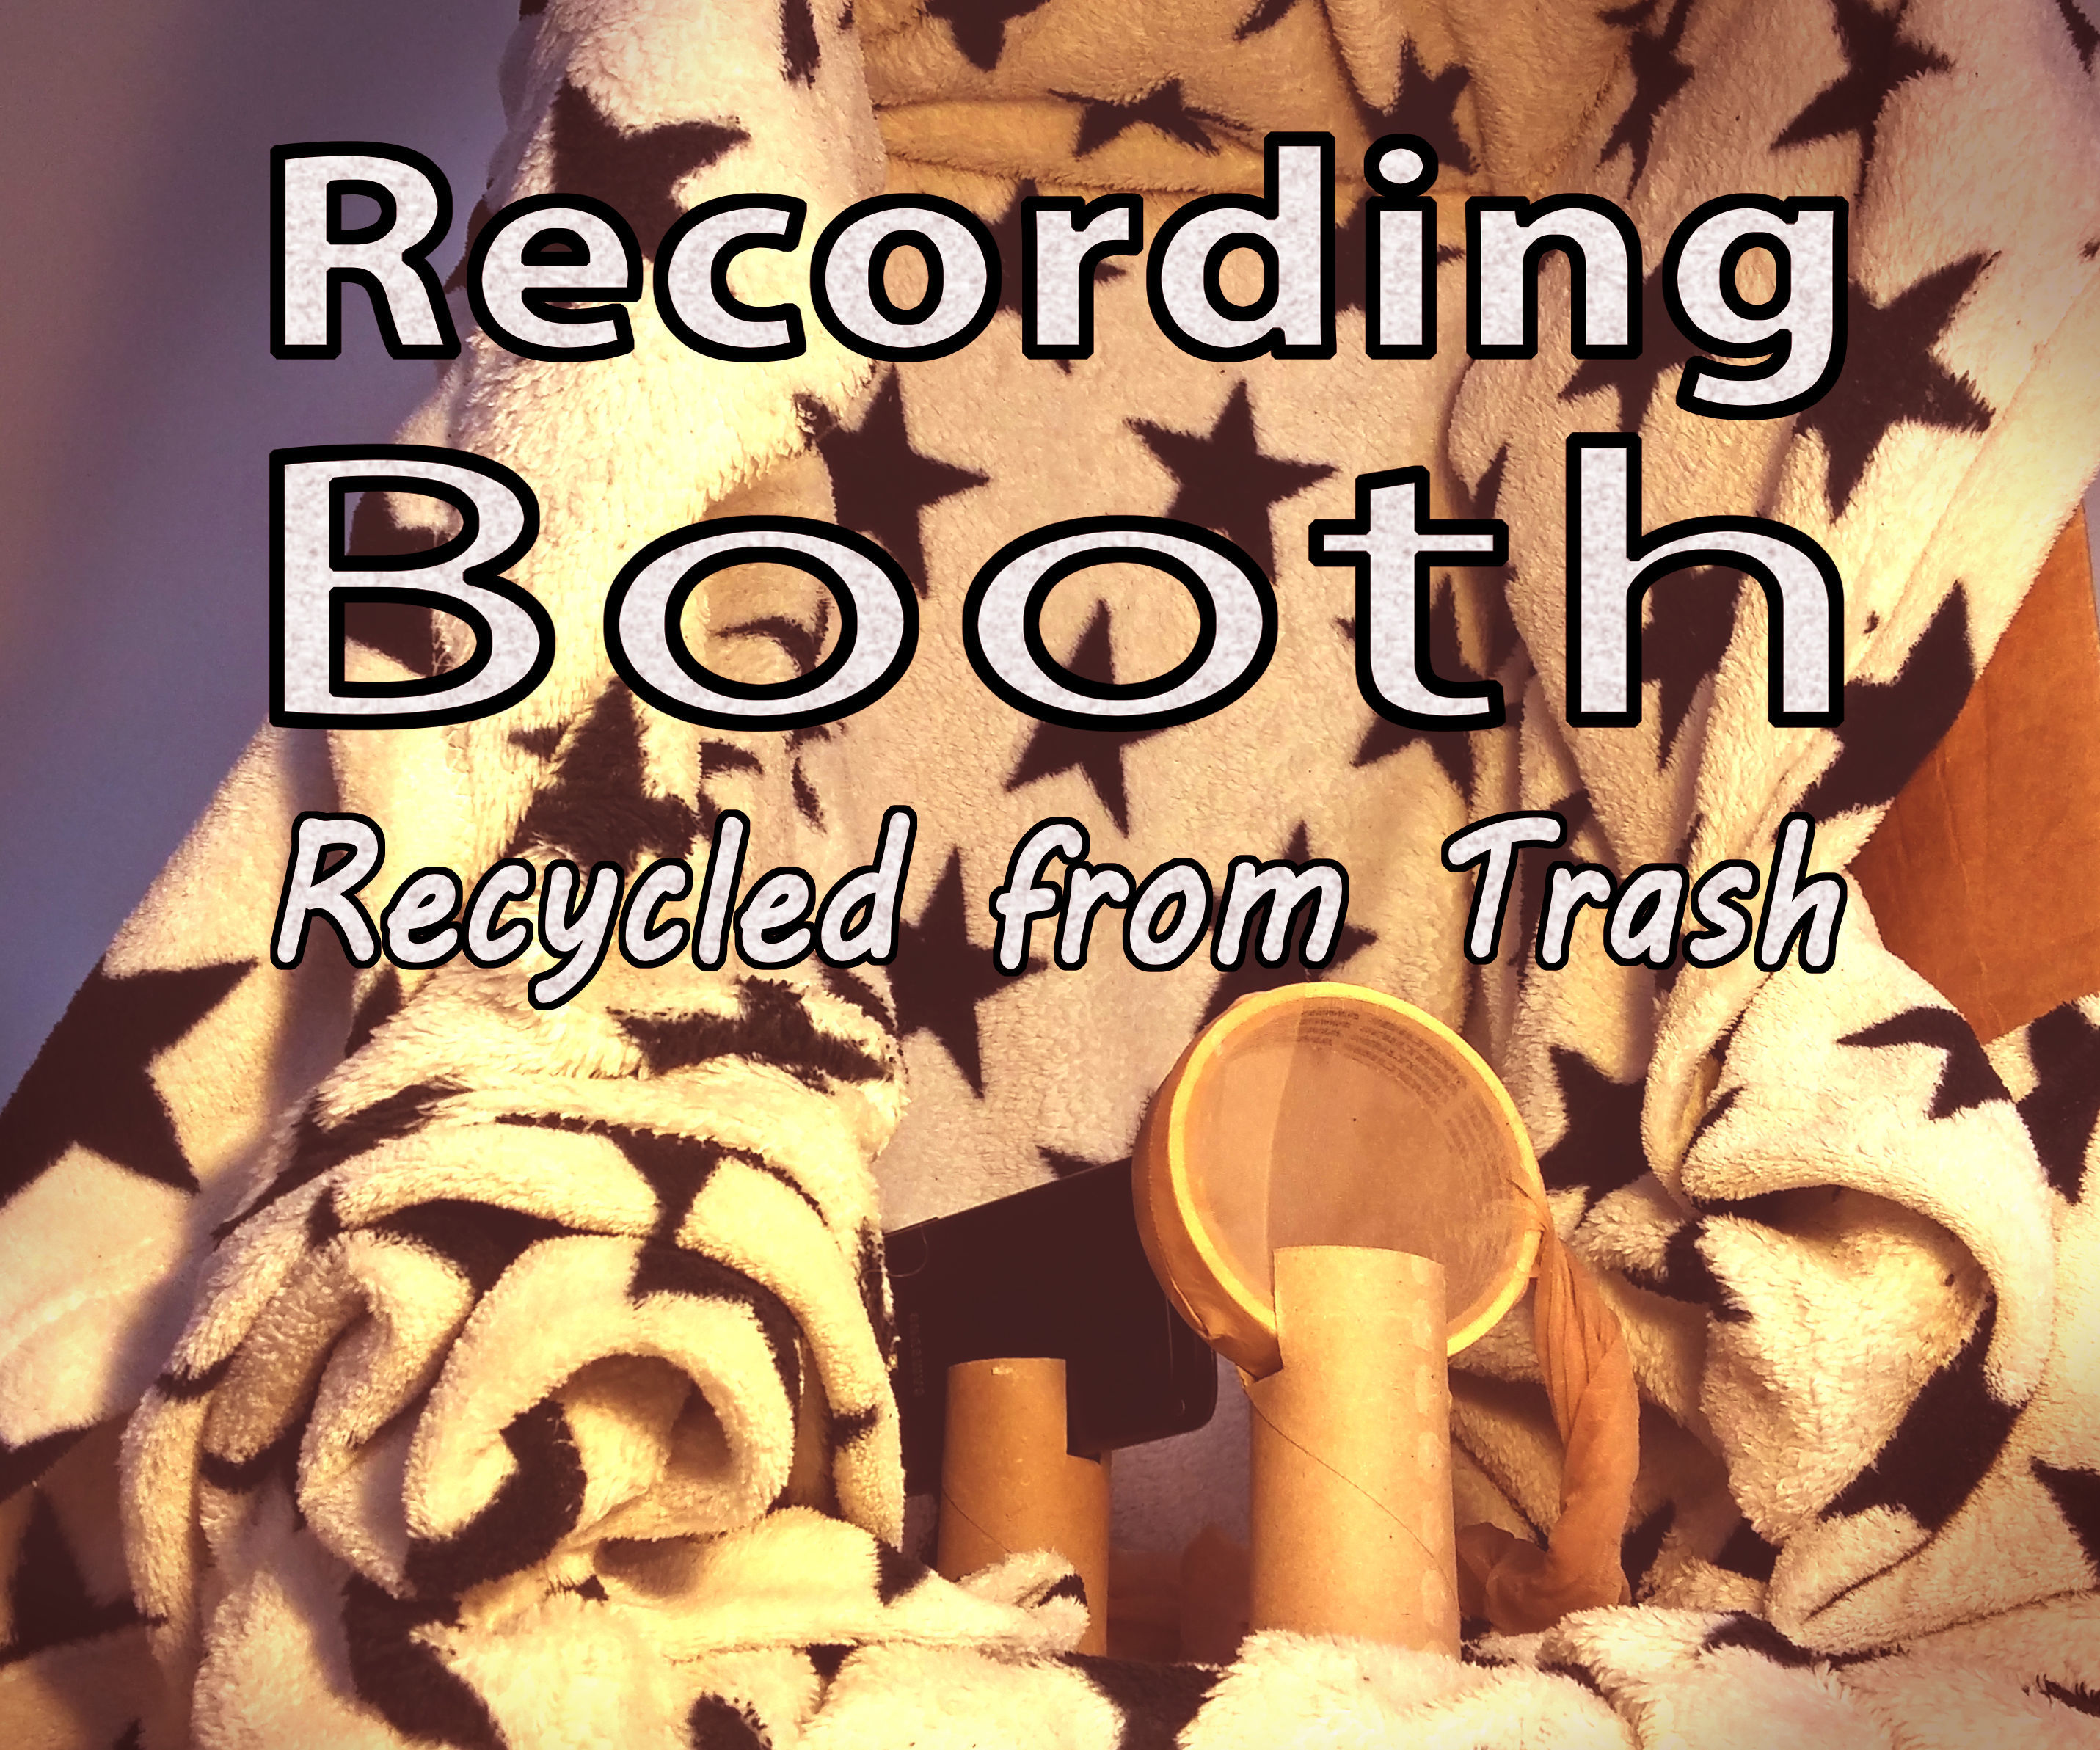 Audio Recording Booth from Trash